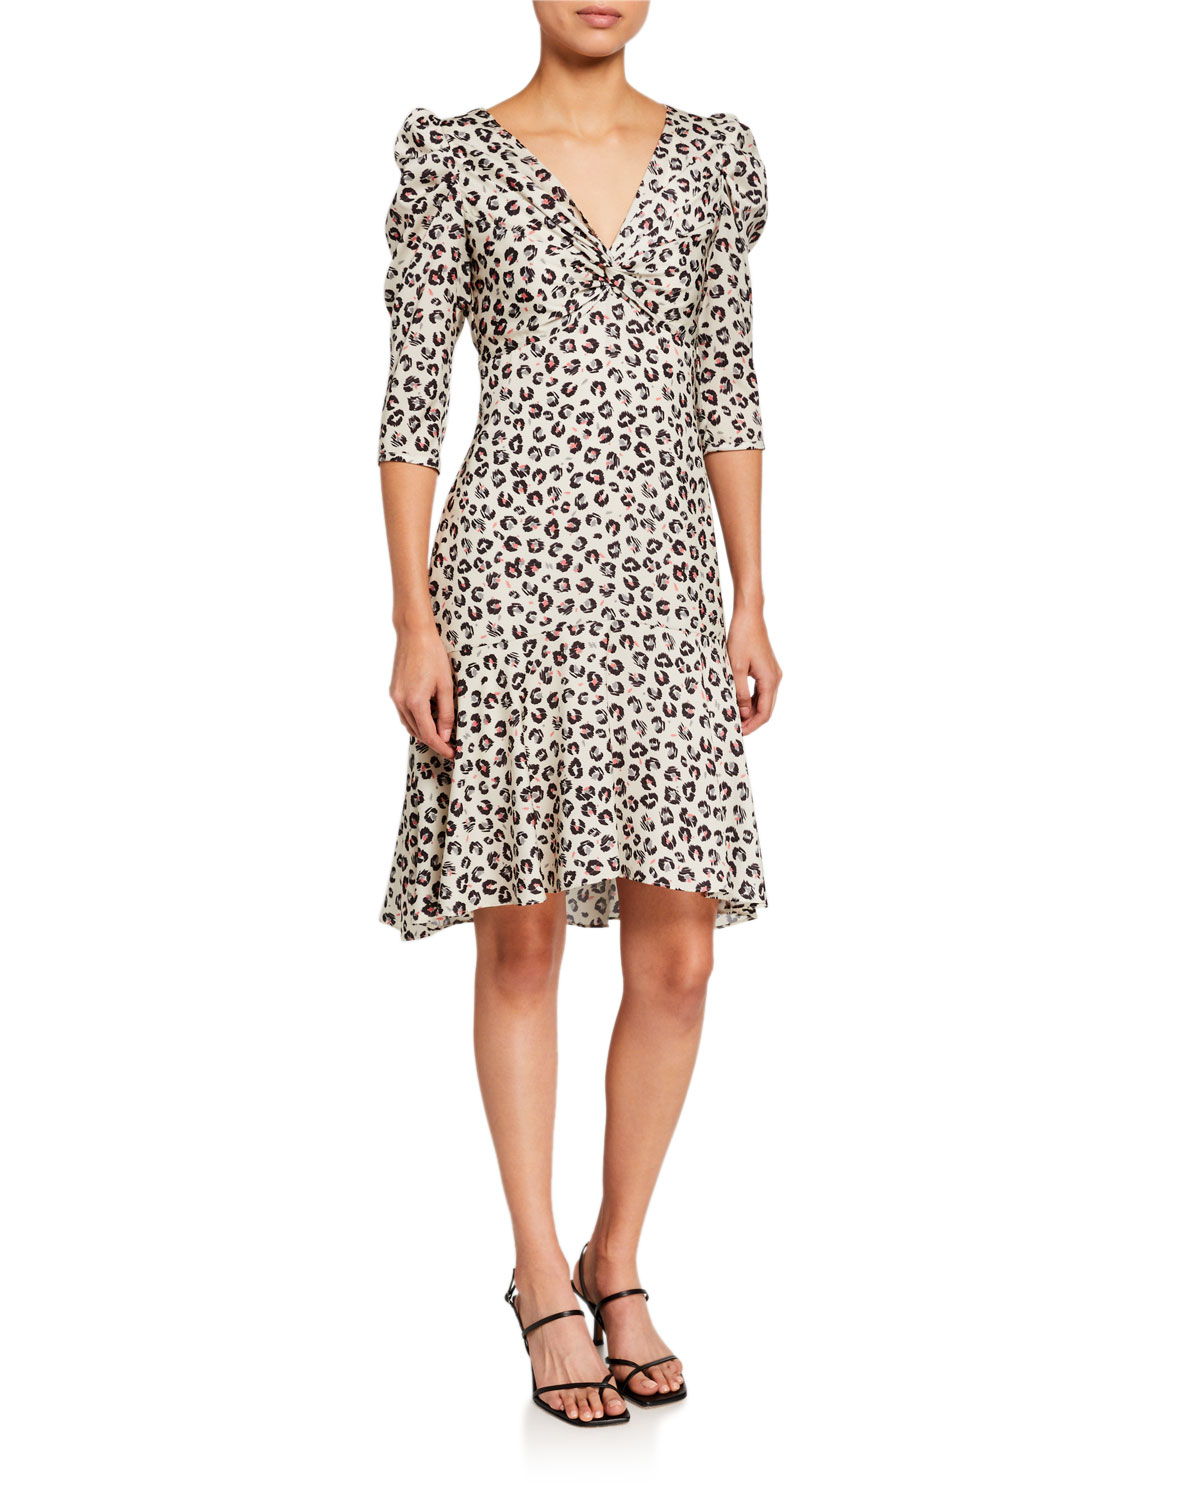 Bailey 44 Olivia 3/4-Sleeve Leopard-Print Dress